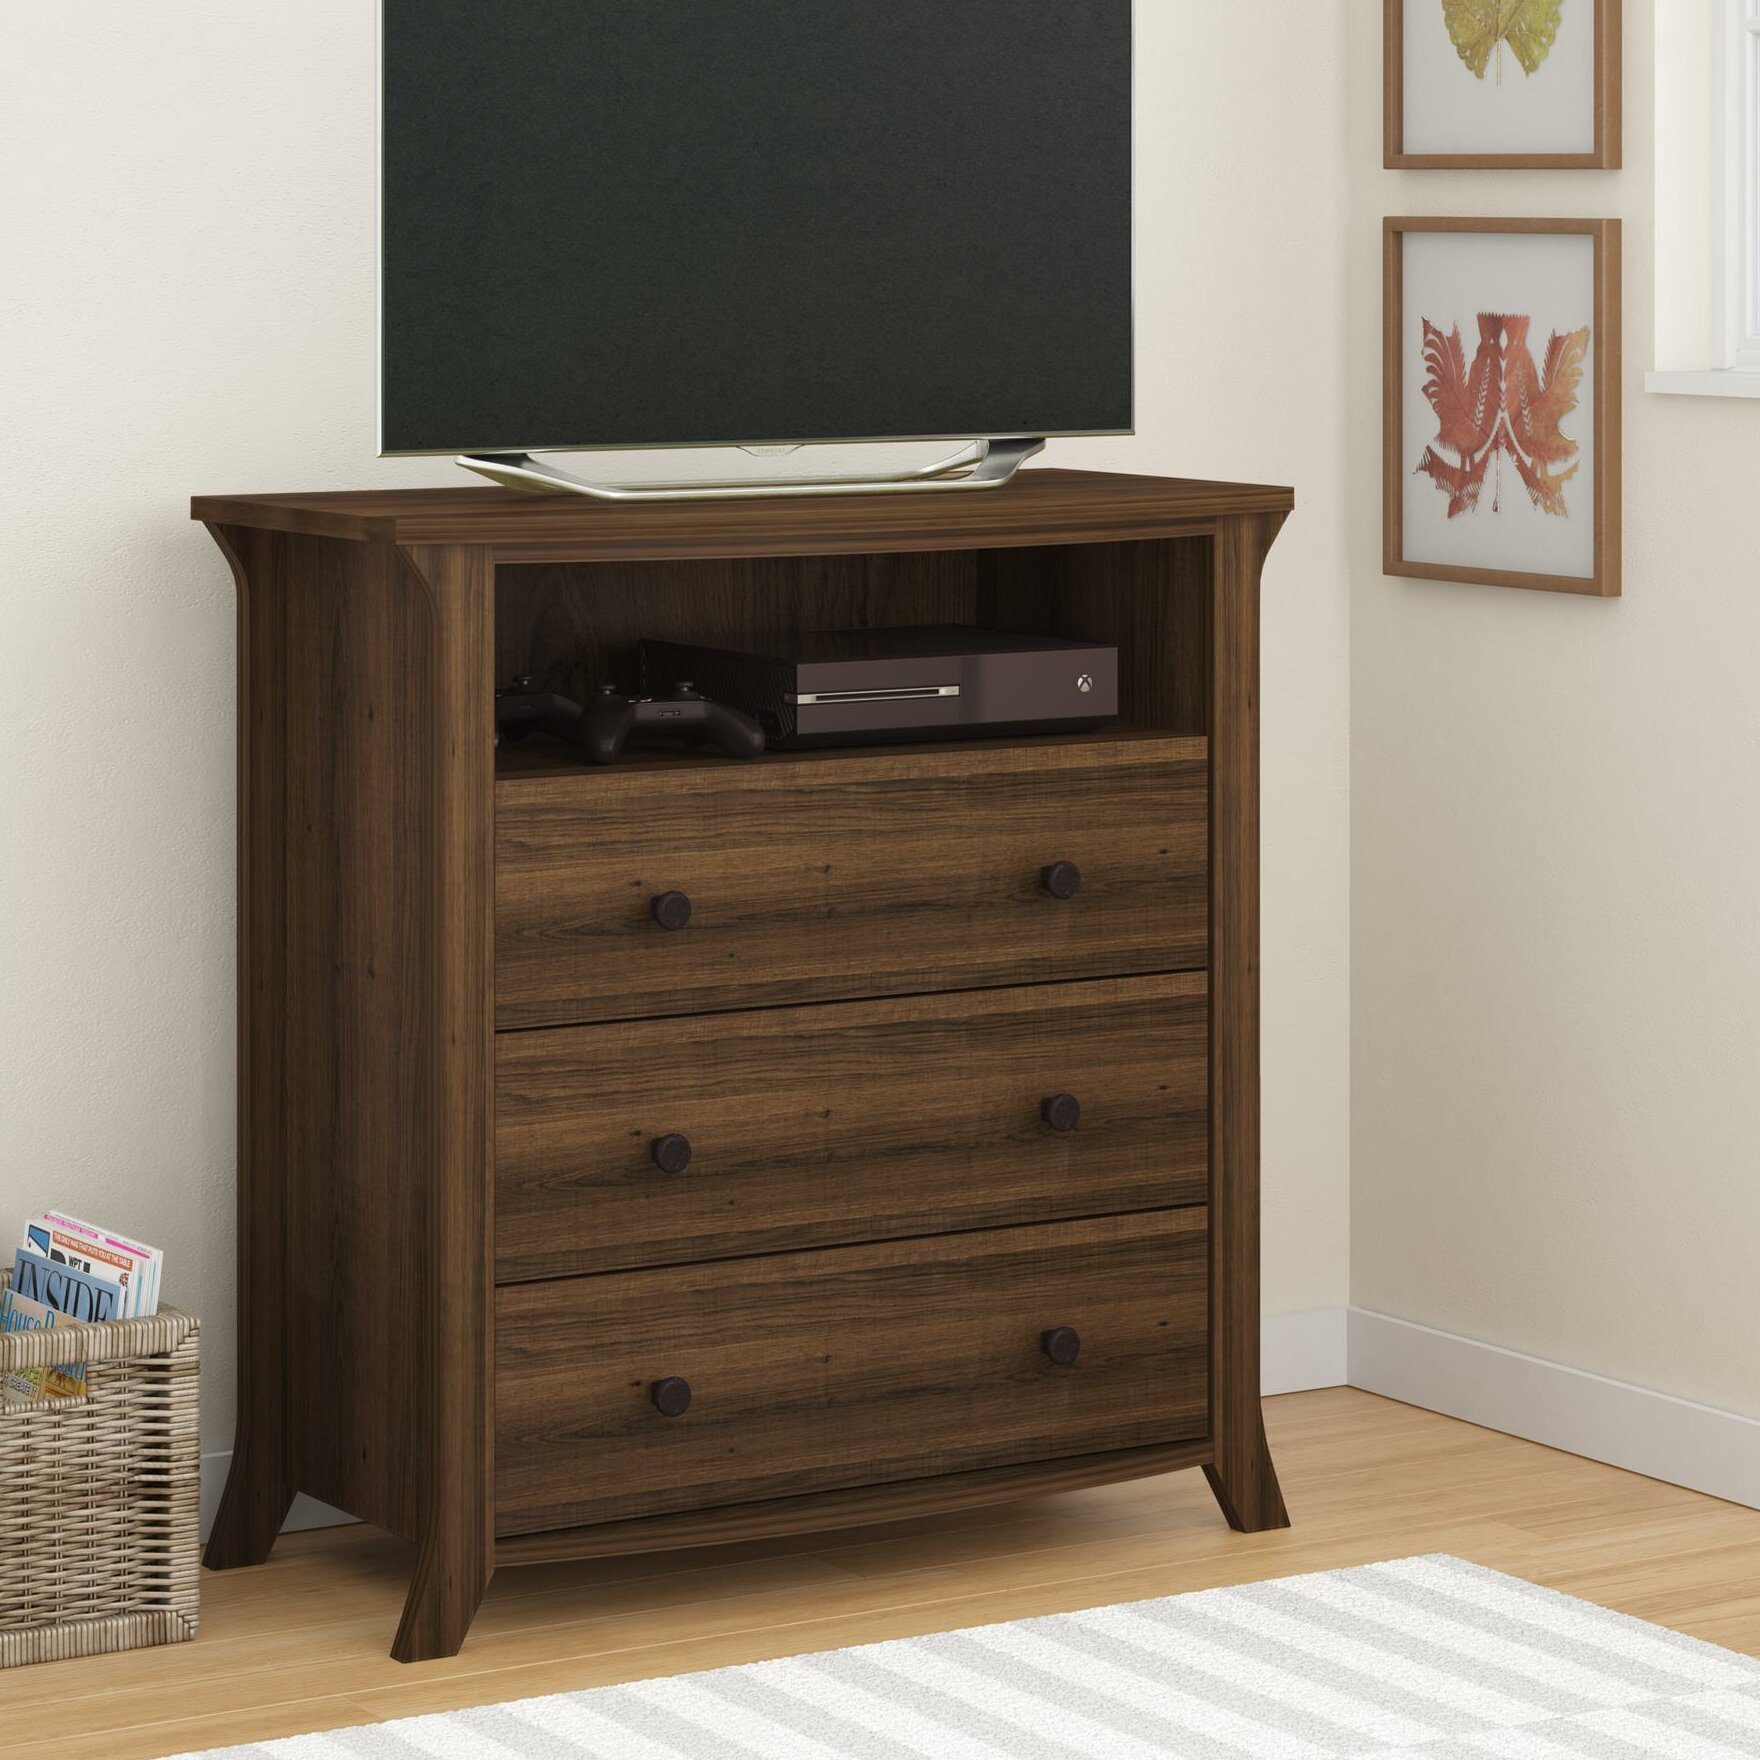 pine willow distressed progressive products item furniture number chest media with drawers